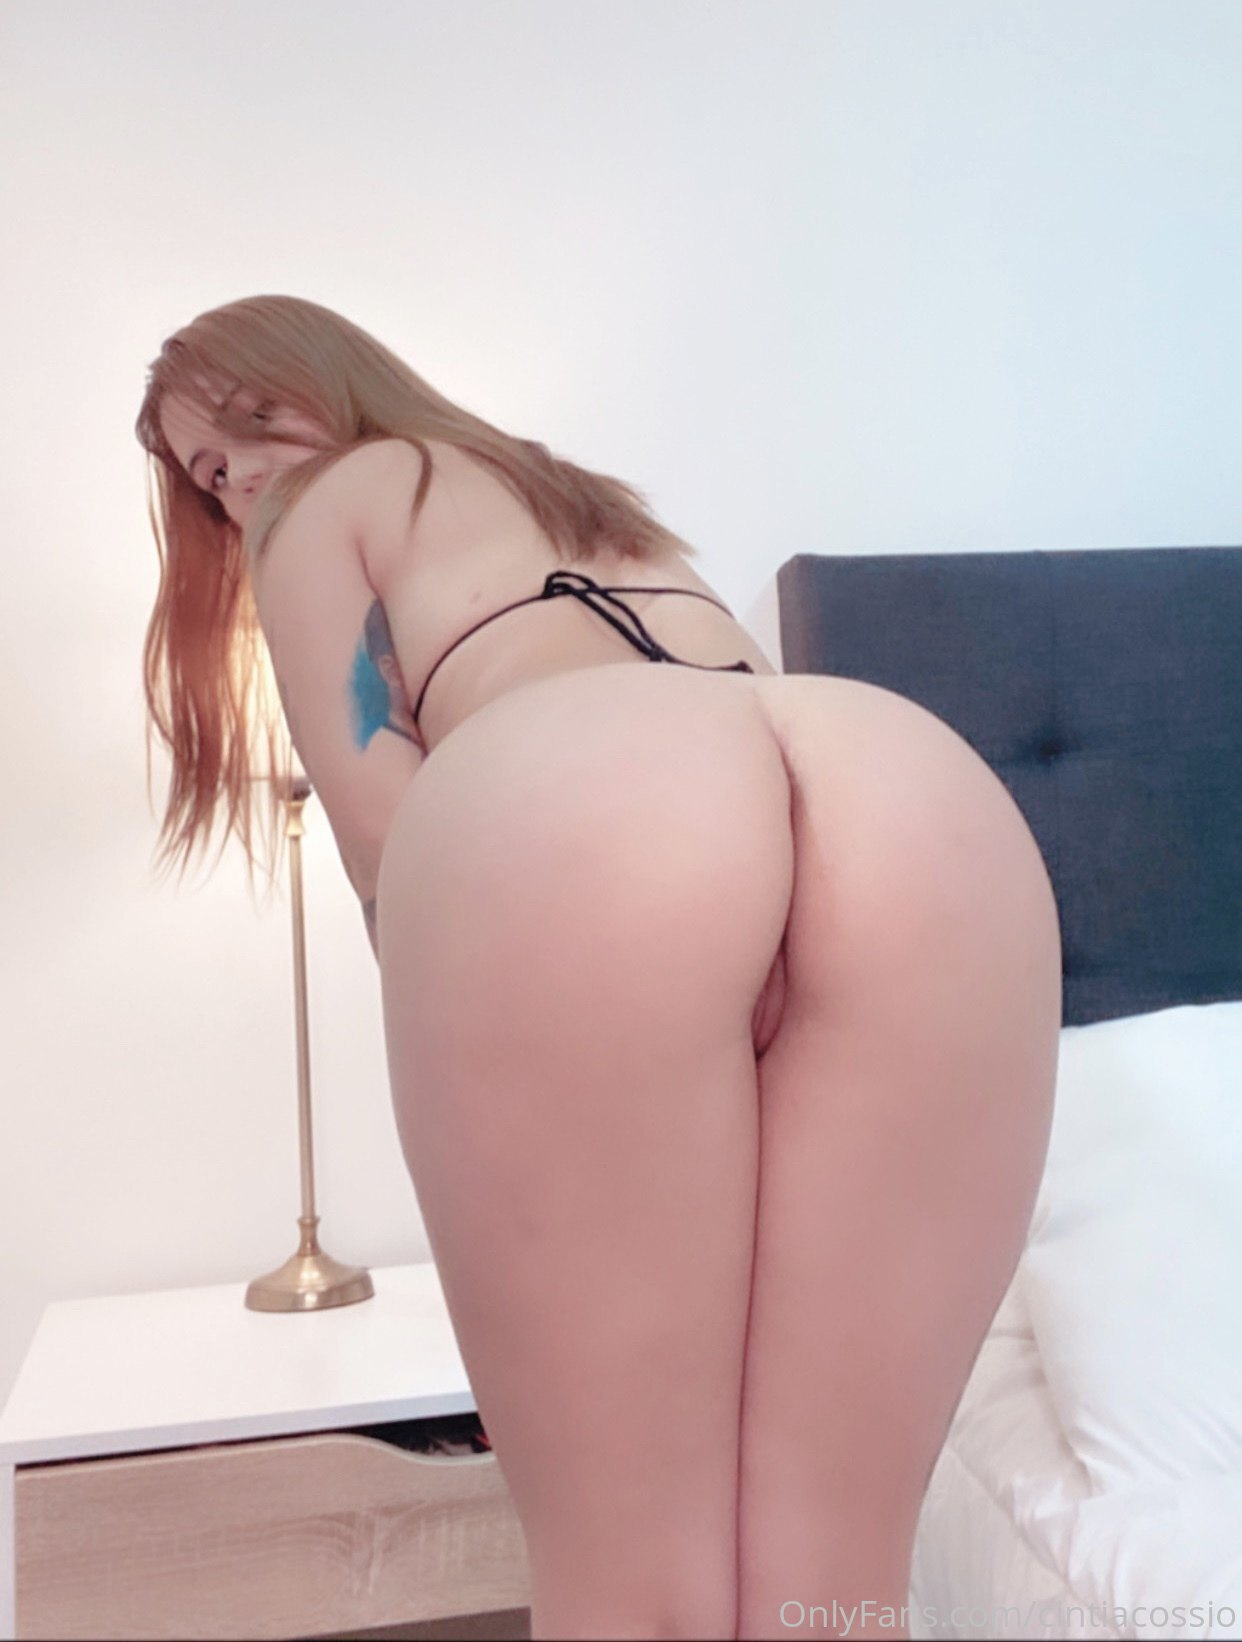 Cintia Cossio Porn OnlyFans Leaked Nudes 149